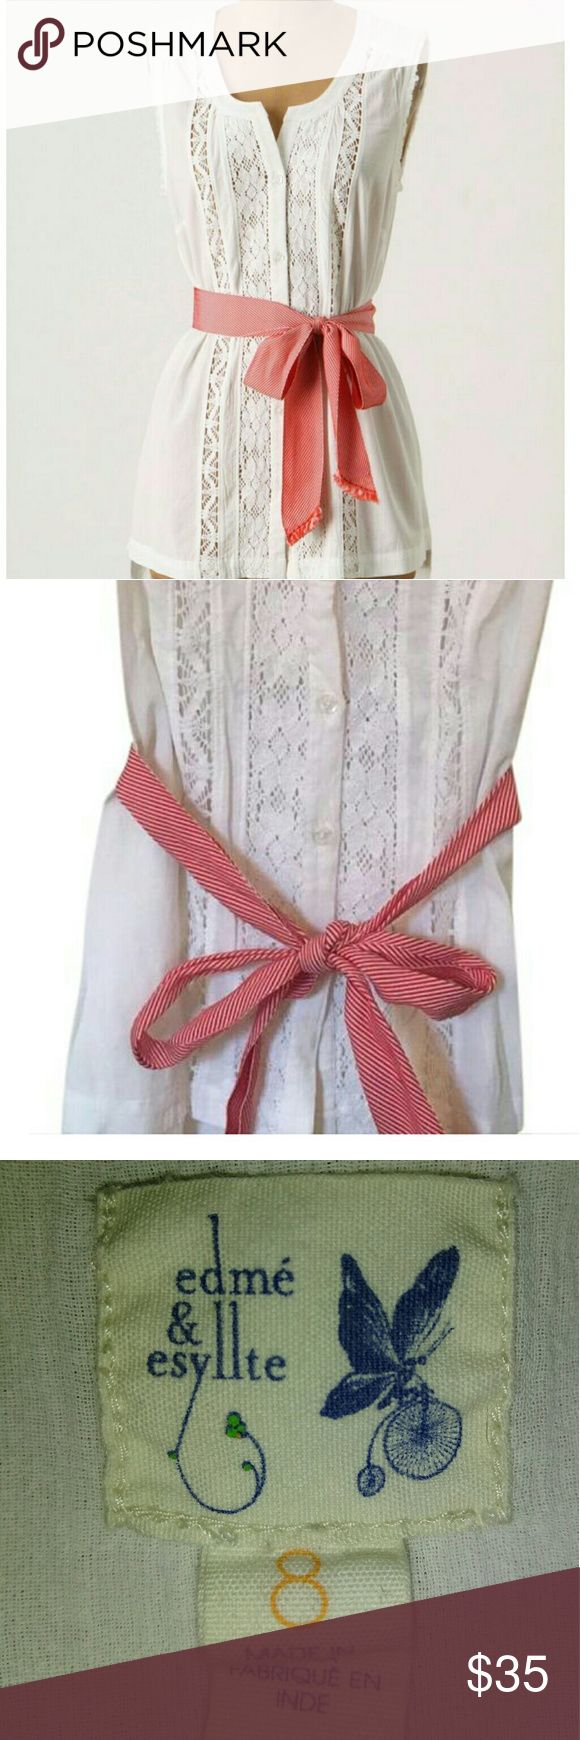 ANTHROPOLOGIE Edmé&Esyllte Lace Inset Stripe Sash Cute corton-linen blouse with diagonal striped, fringed sash Sleeveless with raw edges fringed Sash still tacked to blouse, thread belt loops Anthropologie Tops Button Down Shirts